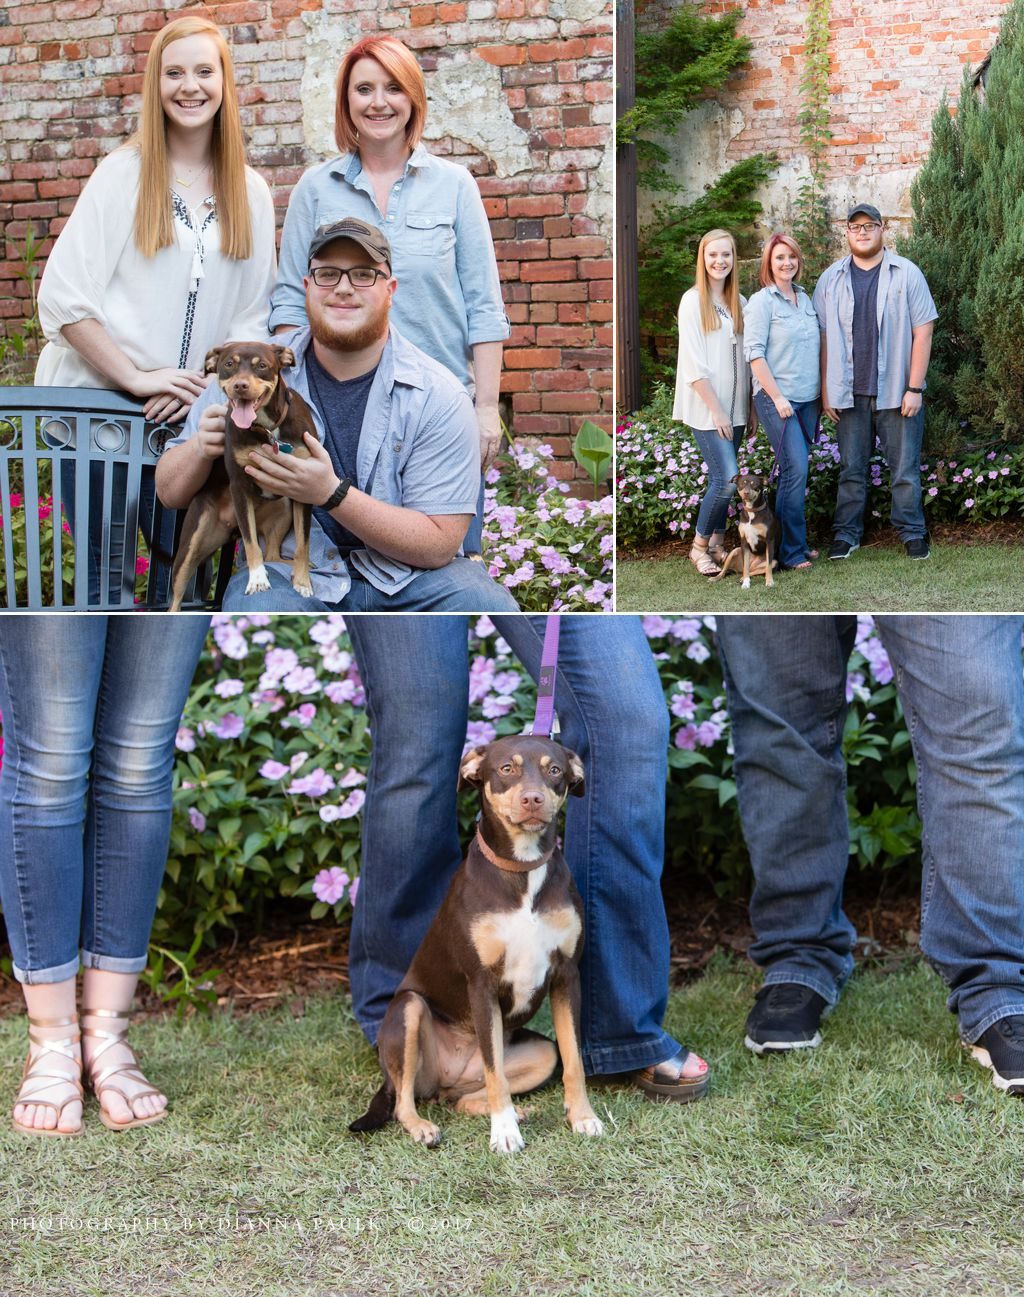 Family portrait session in Prattville AL; Photography by DiAnna Paulk, a certified professional photographer in Montgomery AL